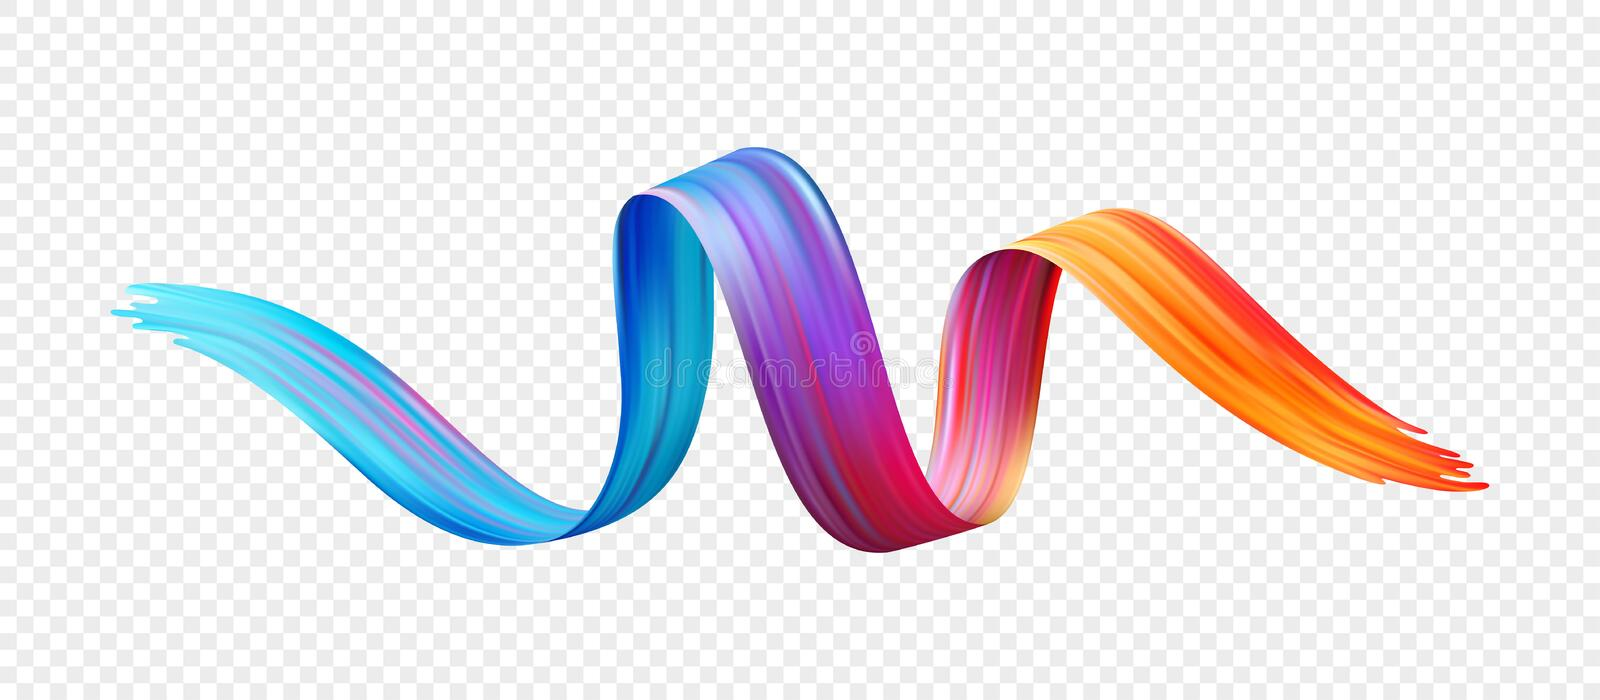 Color brushstroke oil or acrylic paint design element. Vector illustration. EPS10 vector illustration